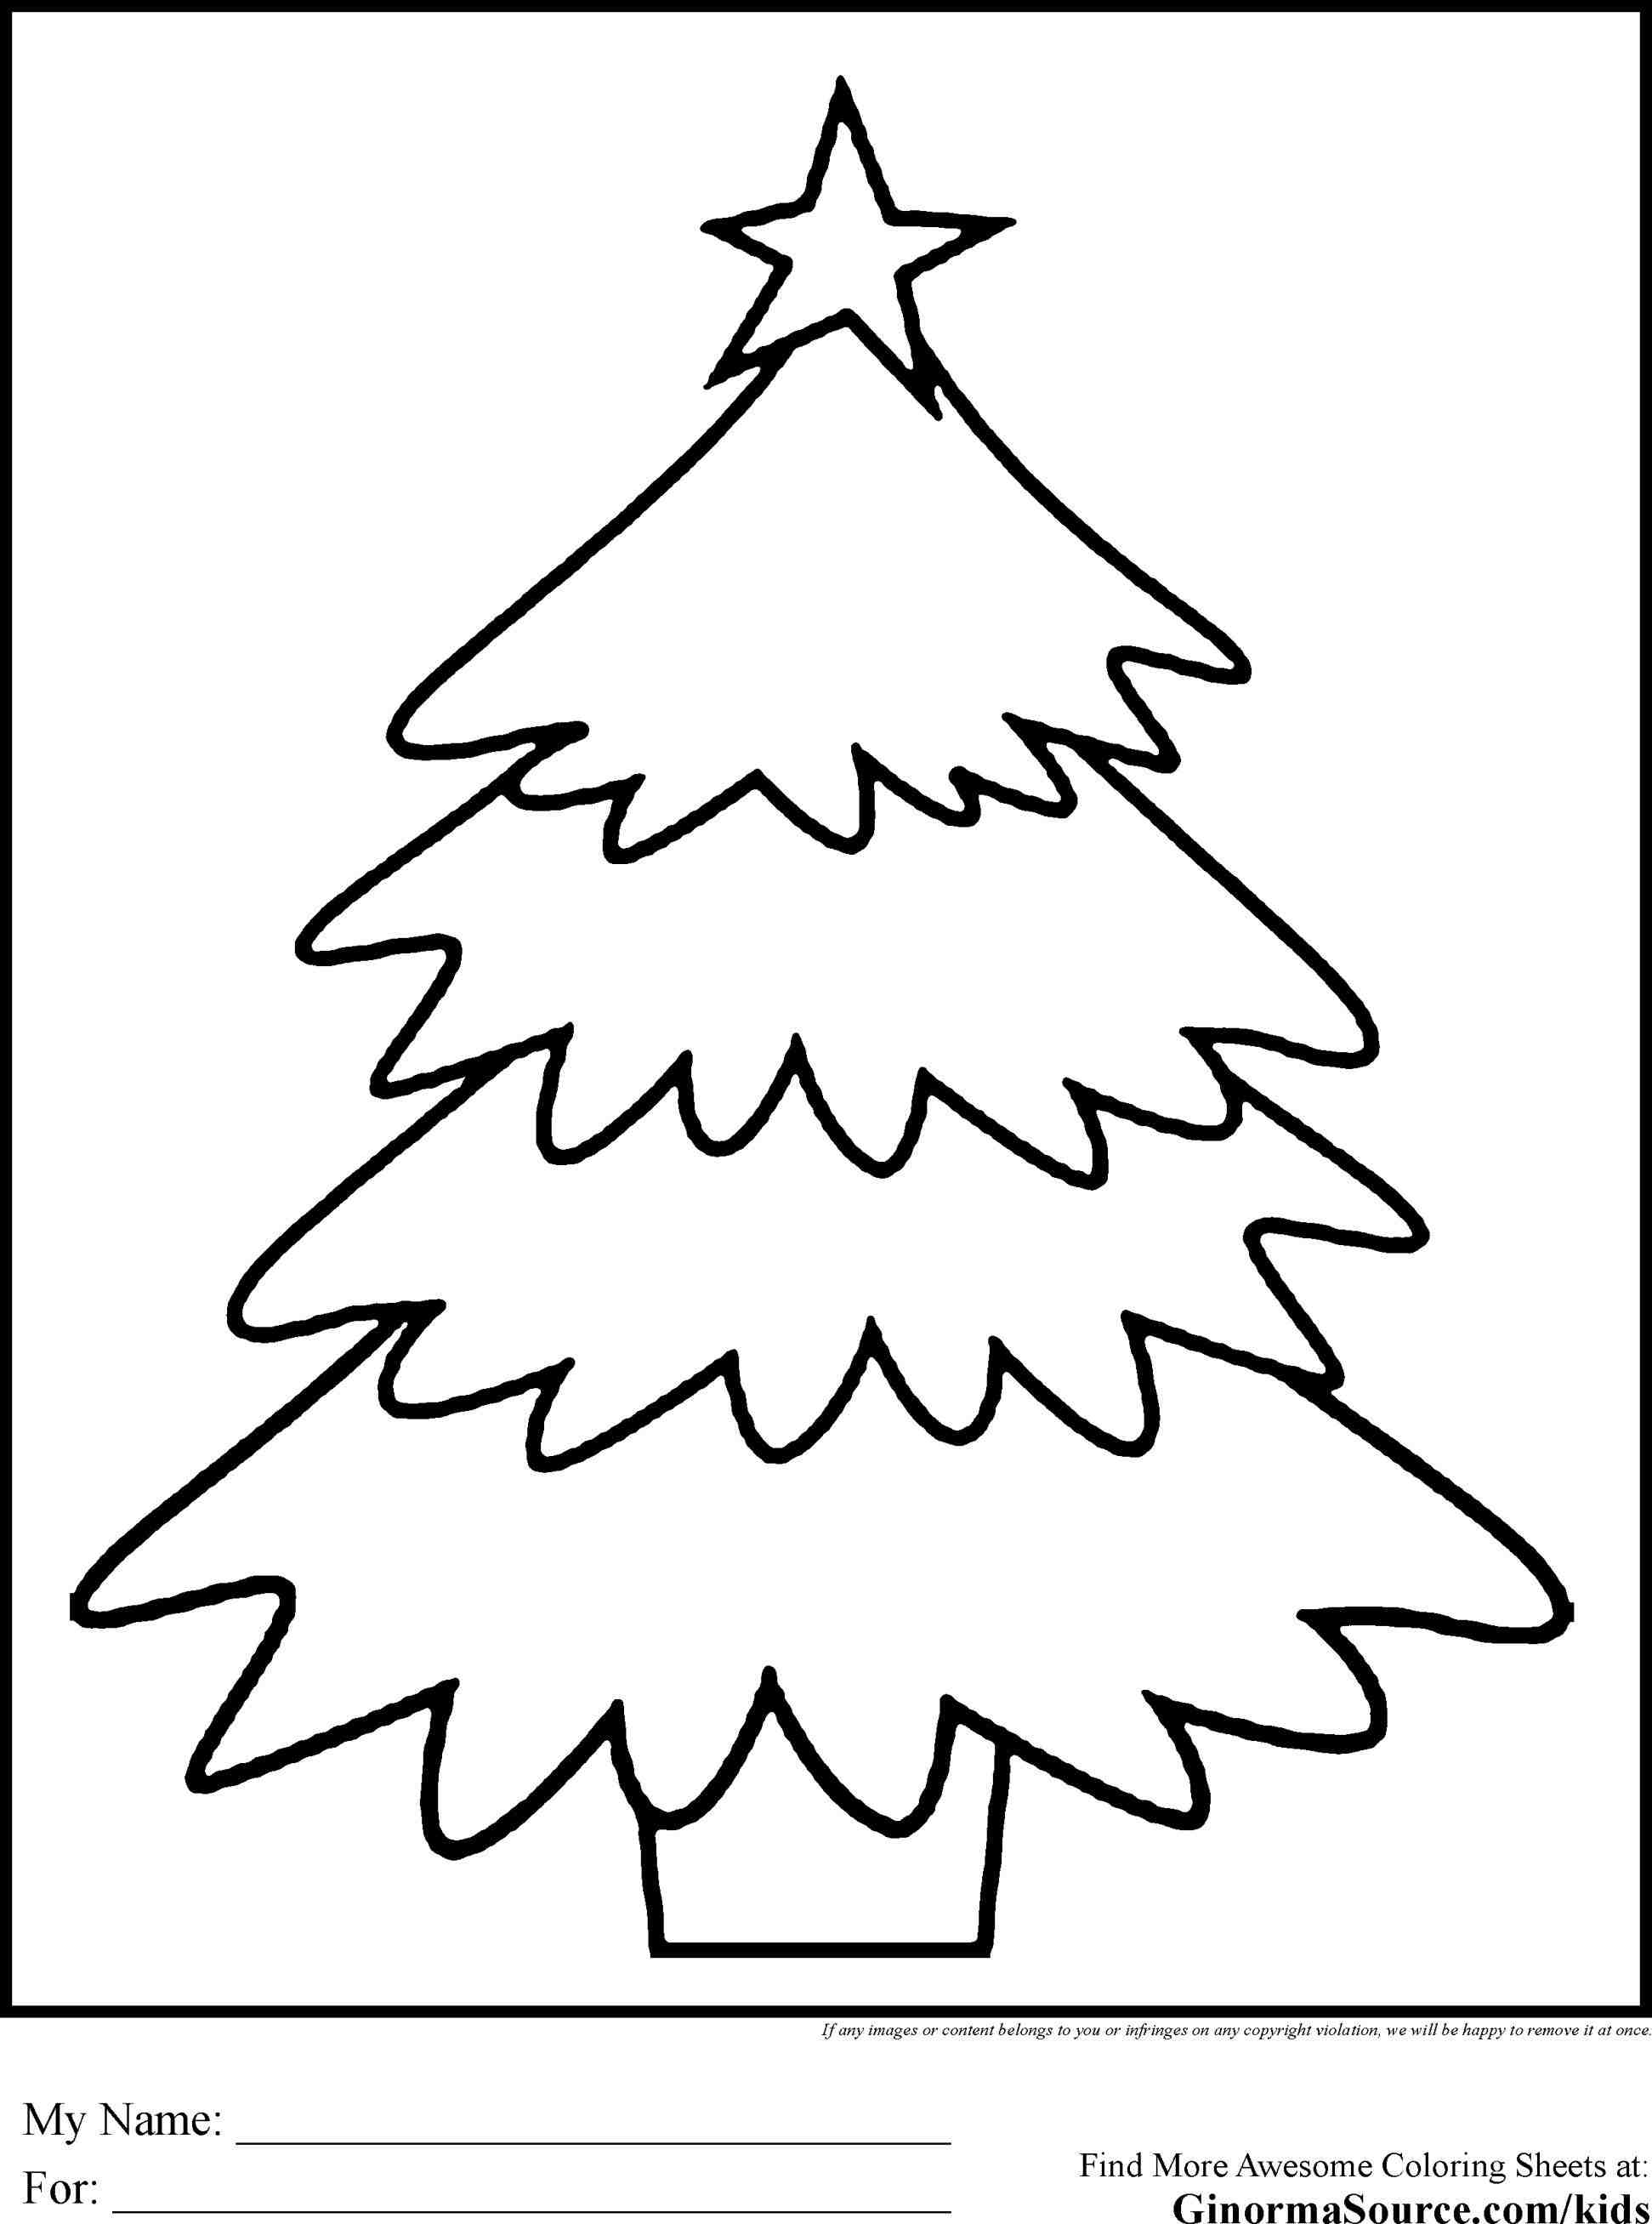 1943x2615 Pin Drawn Fir Tree Realistic 7. Pin Drawn Pine Tree Realistic 2